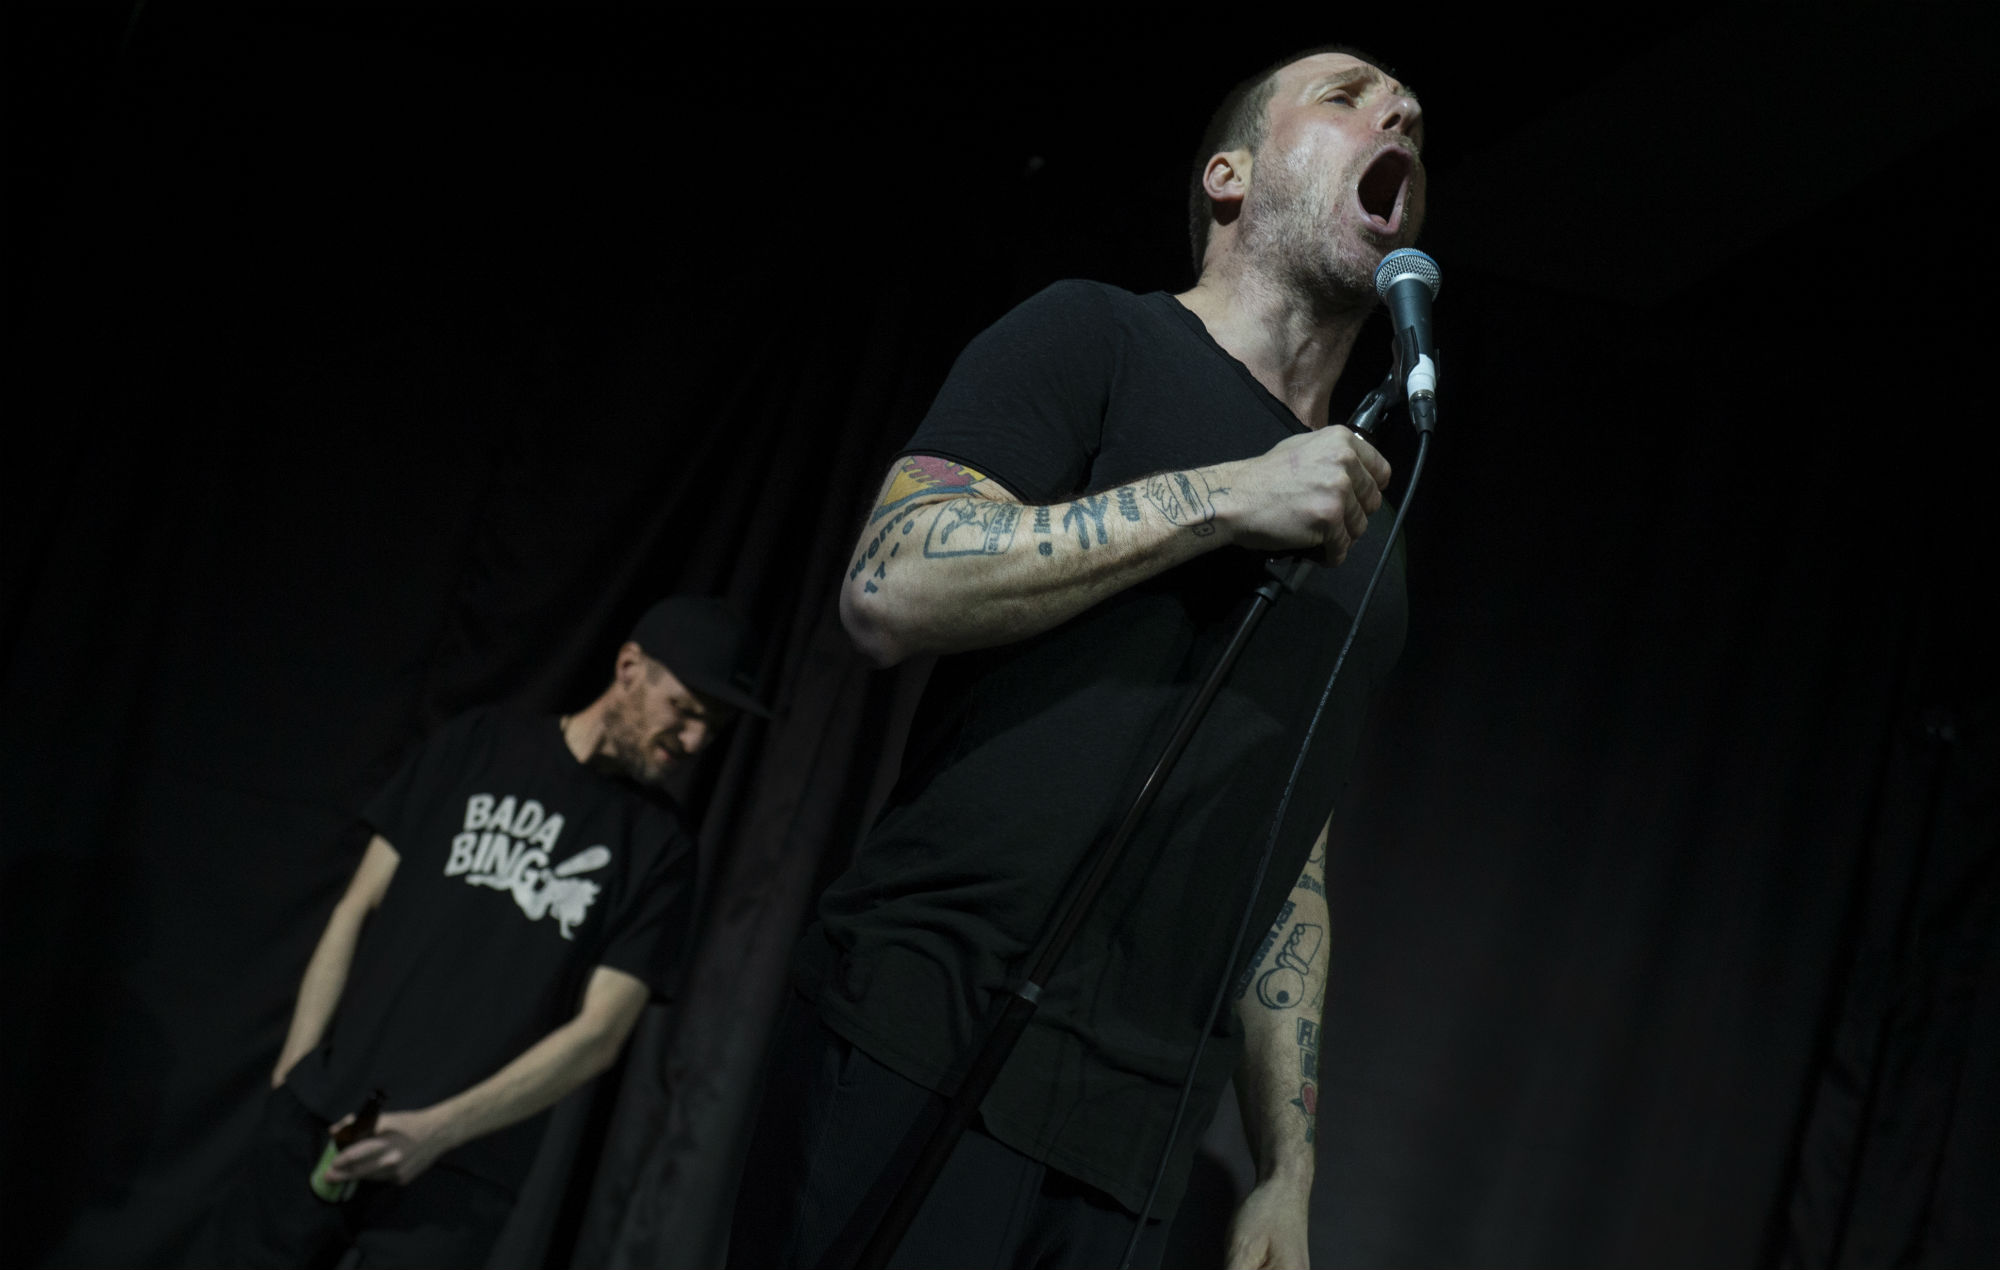 Sleaford Mods with Jason Williamson and Andrew Fearn perform at the Academy on March 15,, 2019 in Manchester, United Kingdom